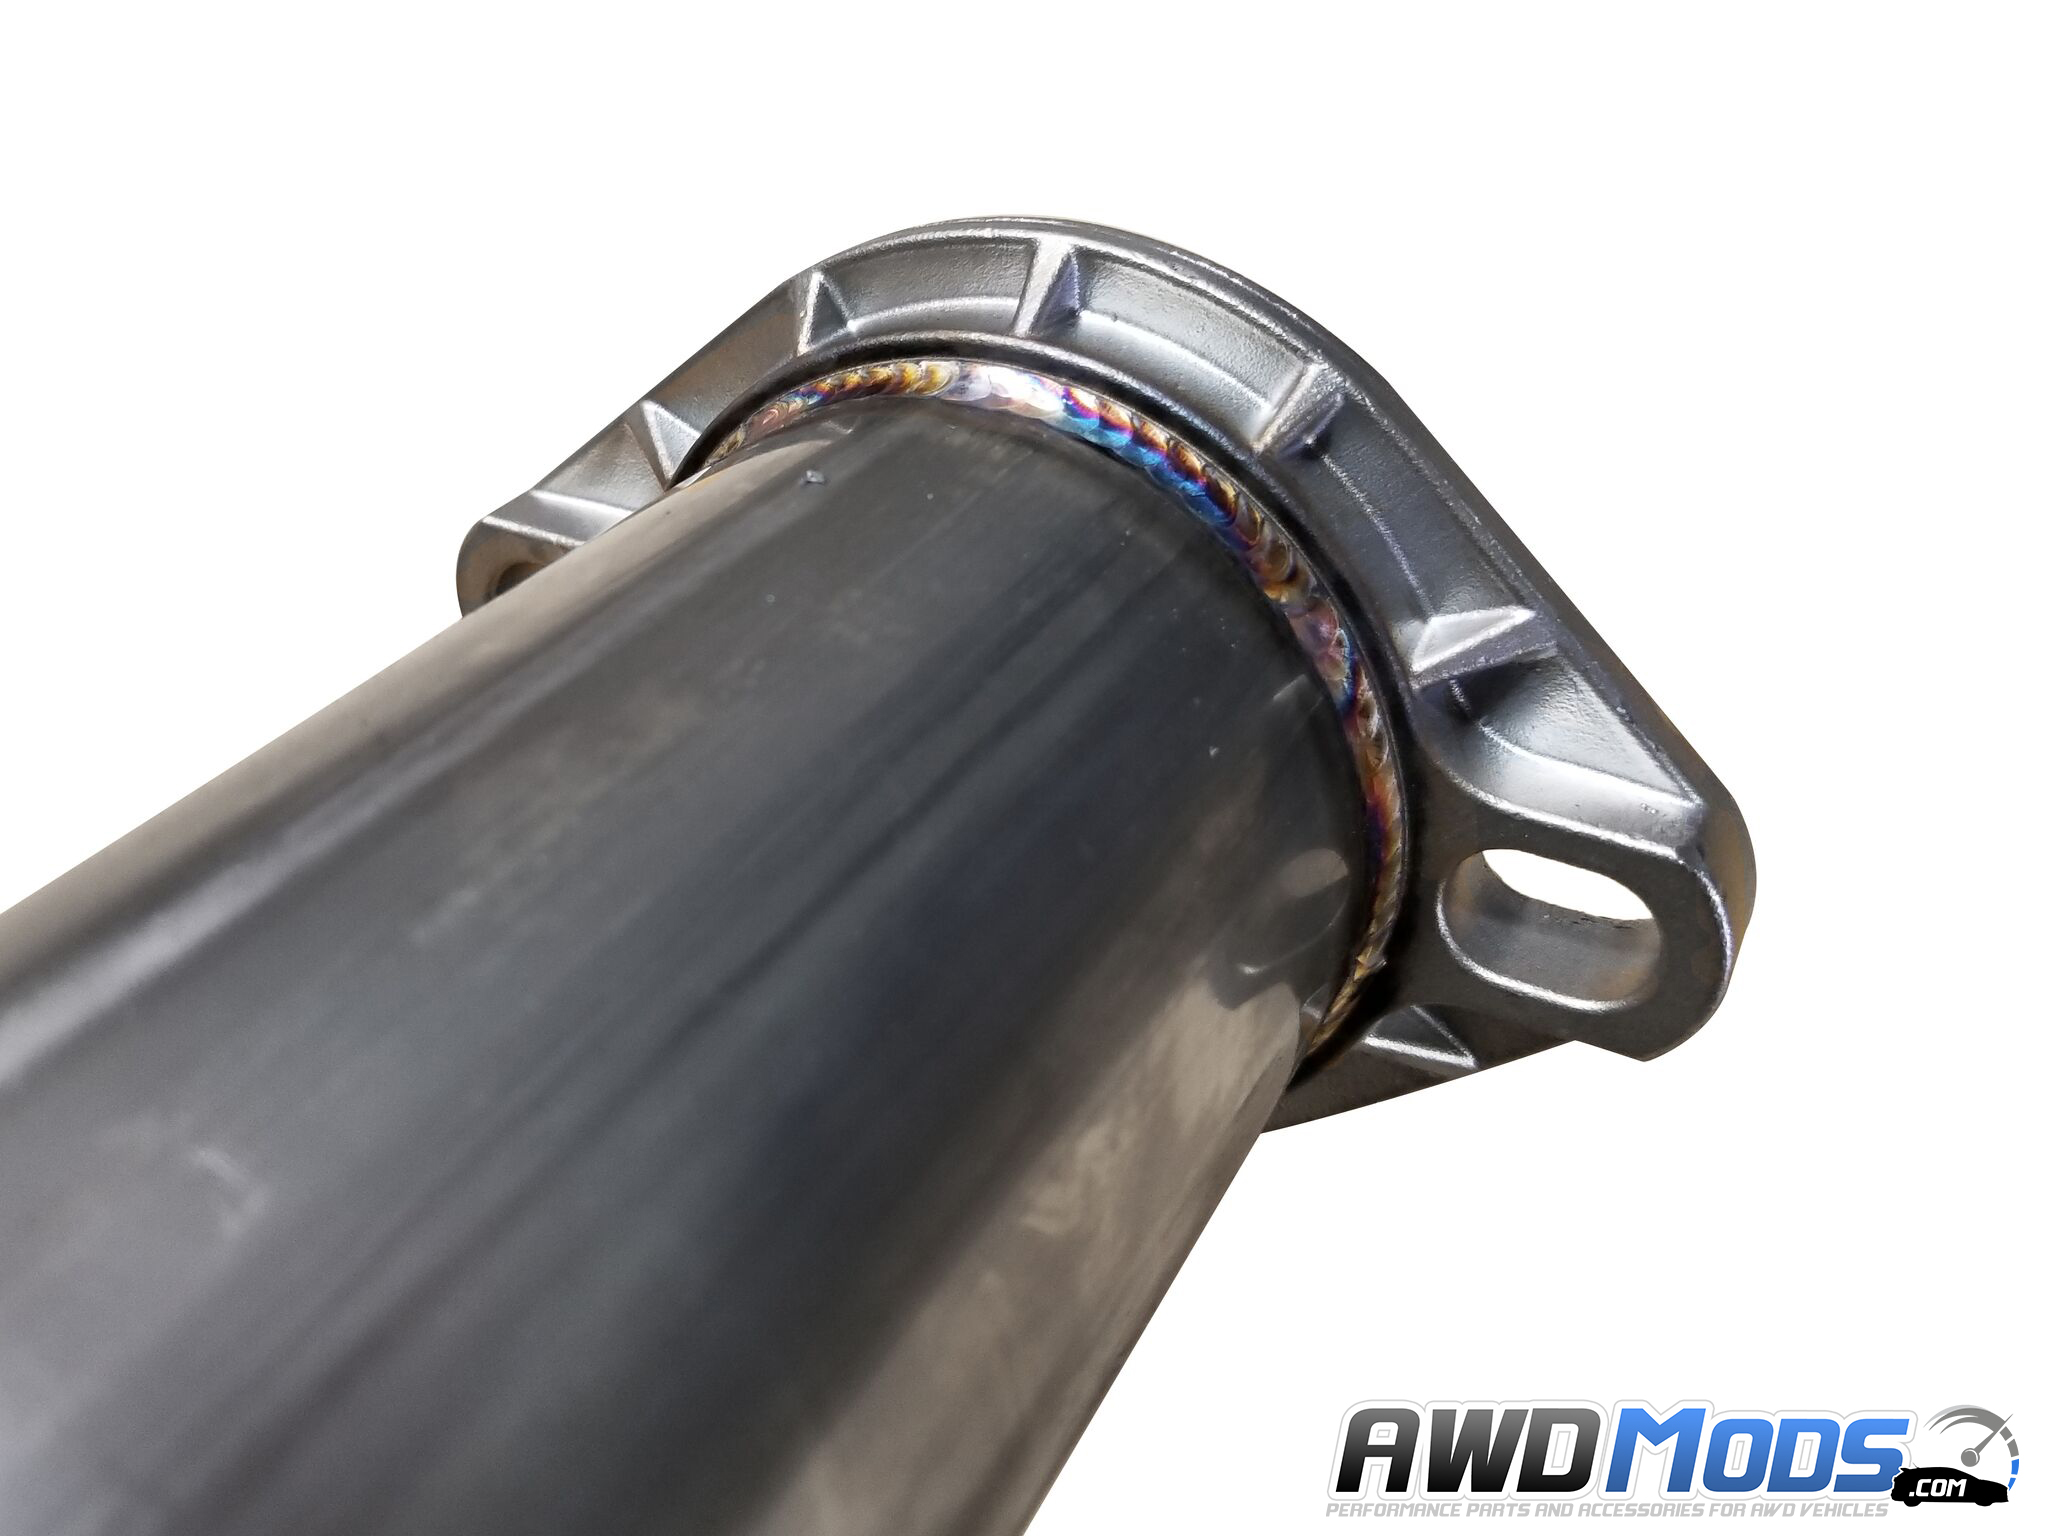 injen performance cat-back exhaust system for the ford focus rs